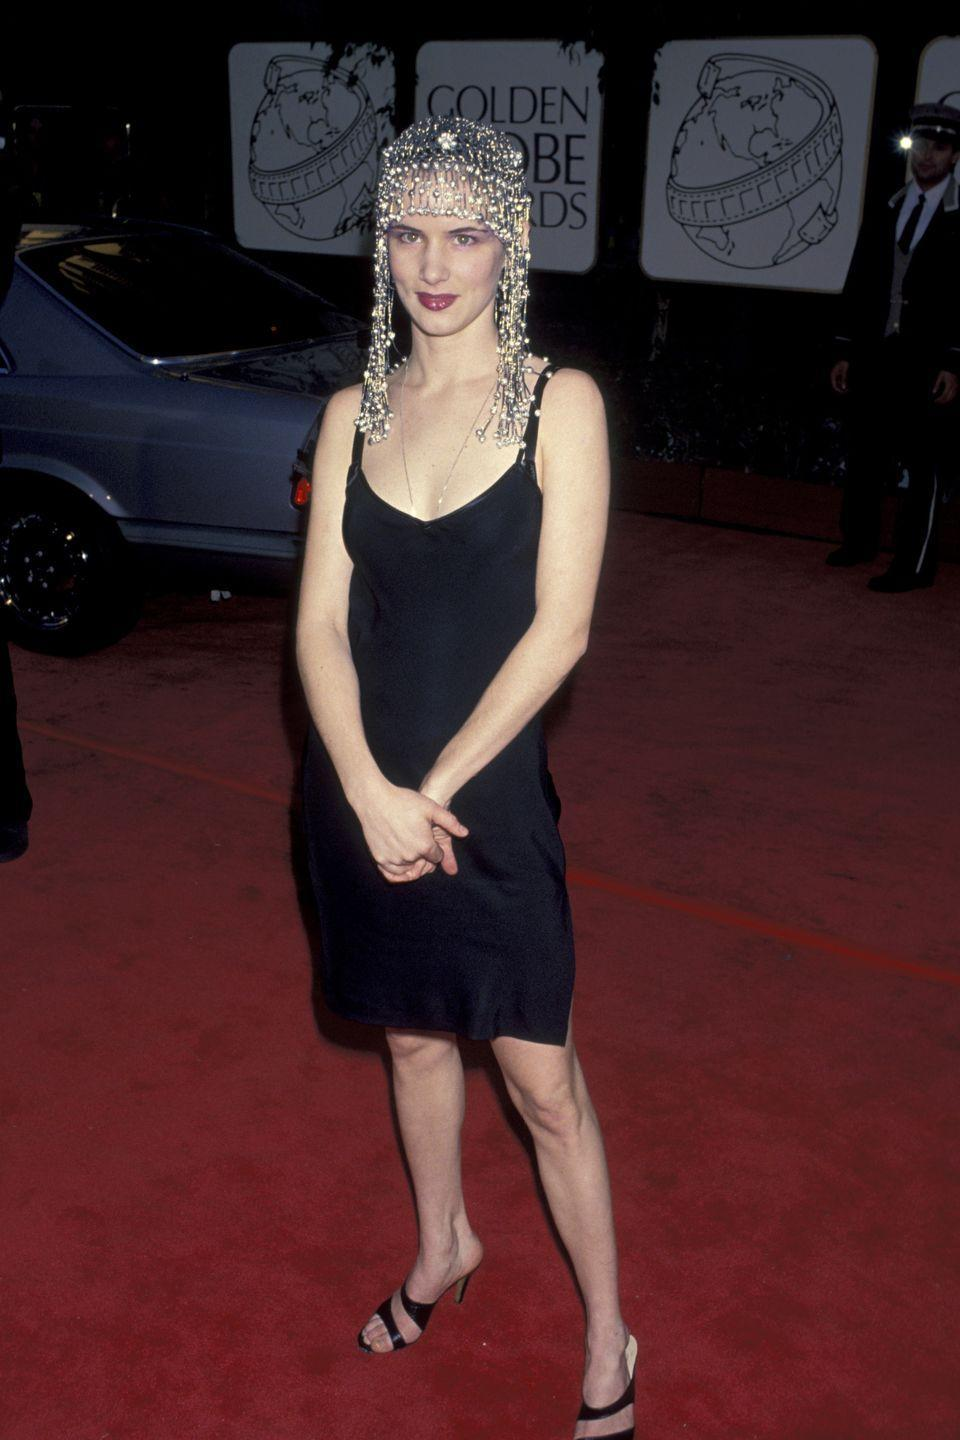 <p>The LBD was too simple for Lewis in 1994, so she added in a rather ornate headpiece.</p>